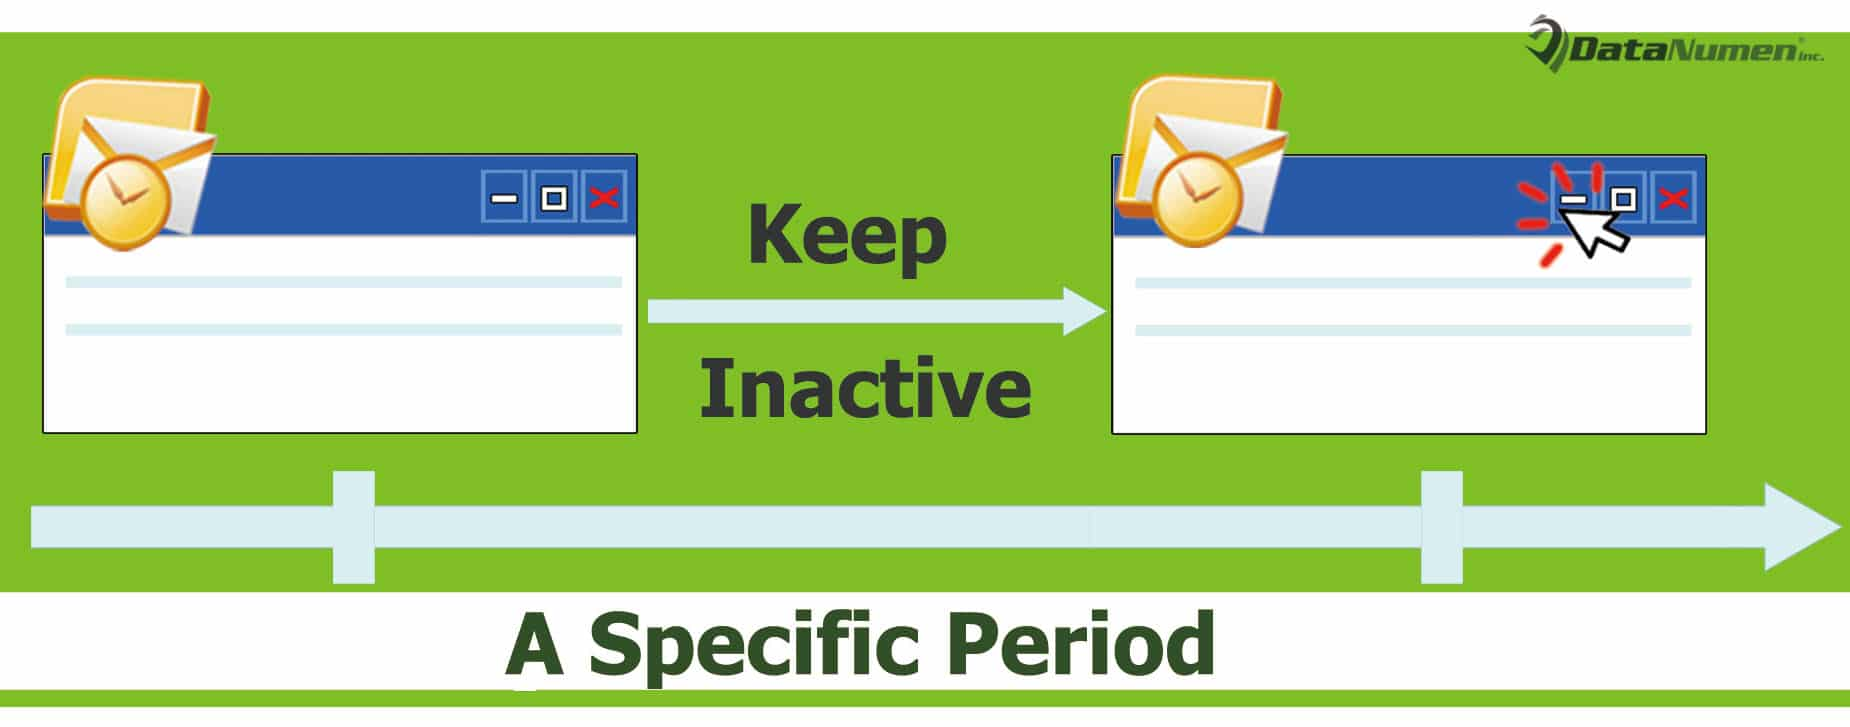 Auto Minimize Outlook Window after Inactive for a Specific Period